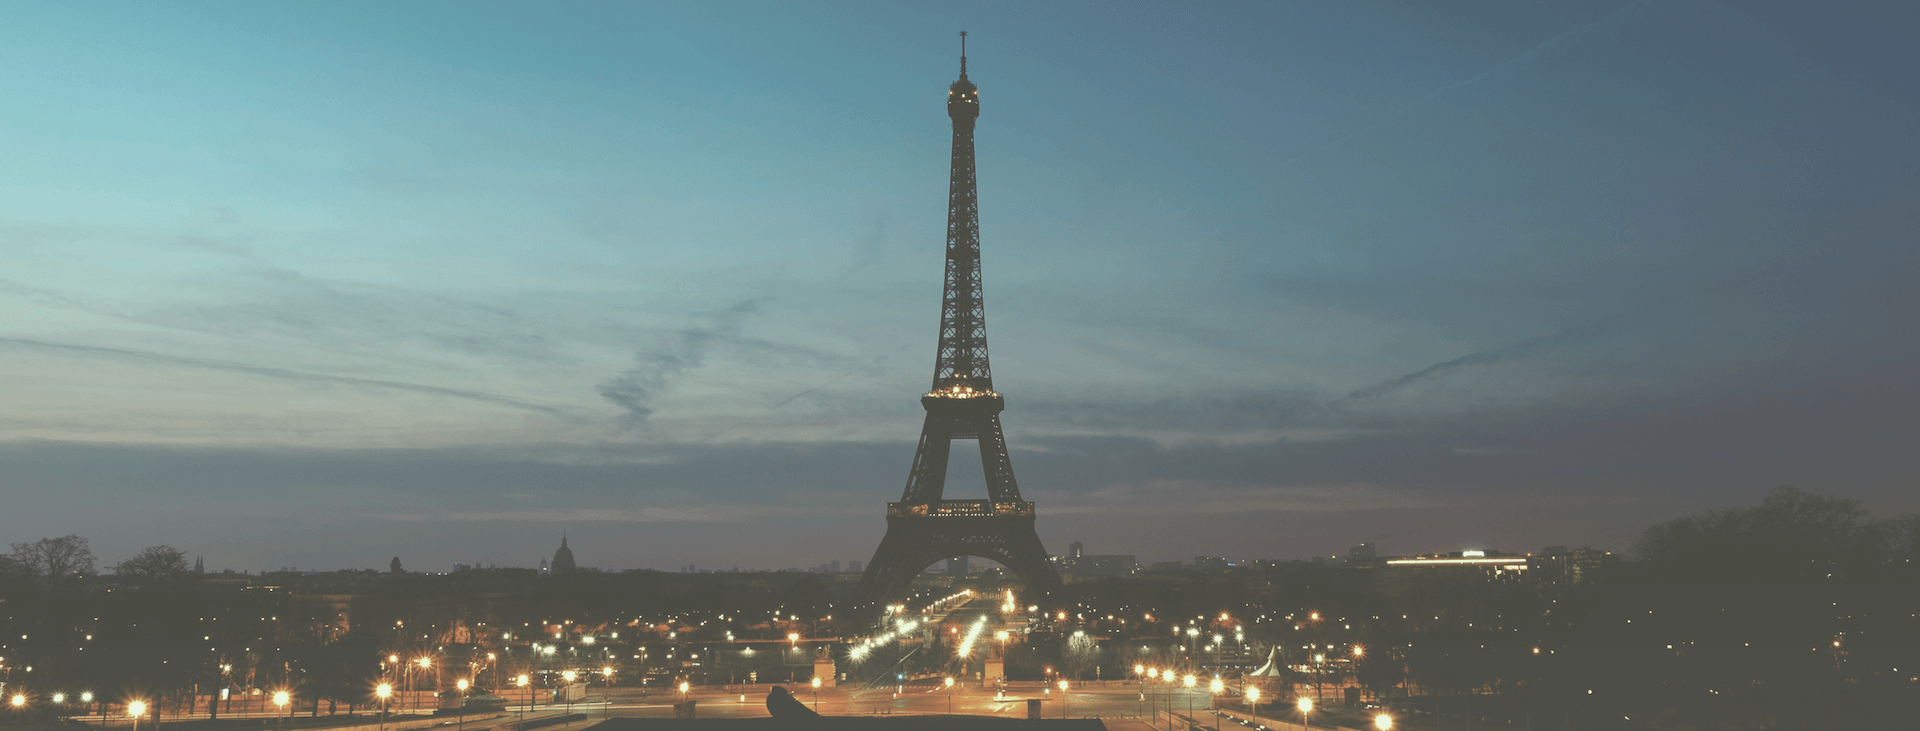 Beautiful night time shot of the Eiffel Tower over Paris